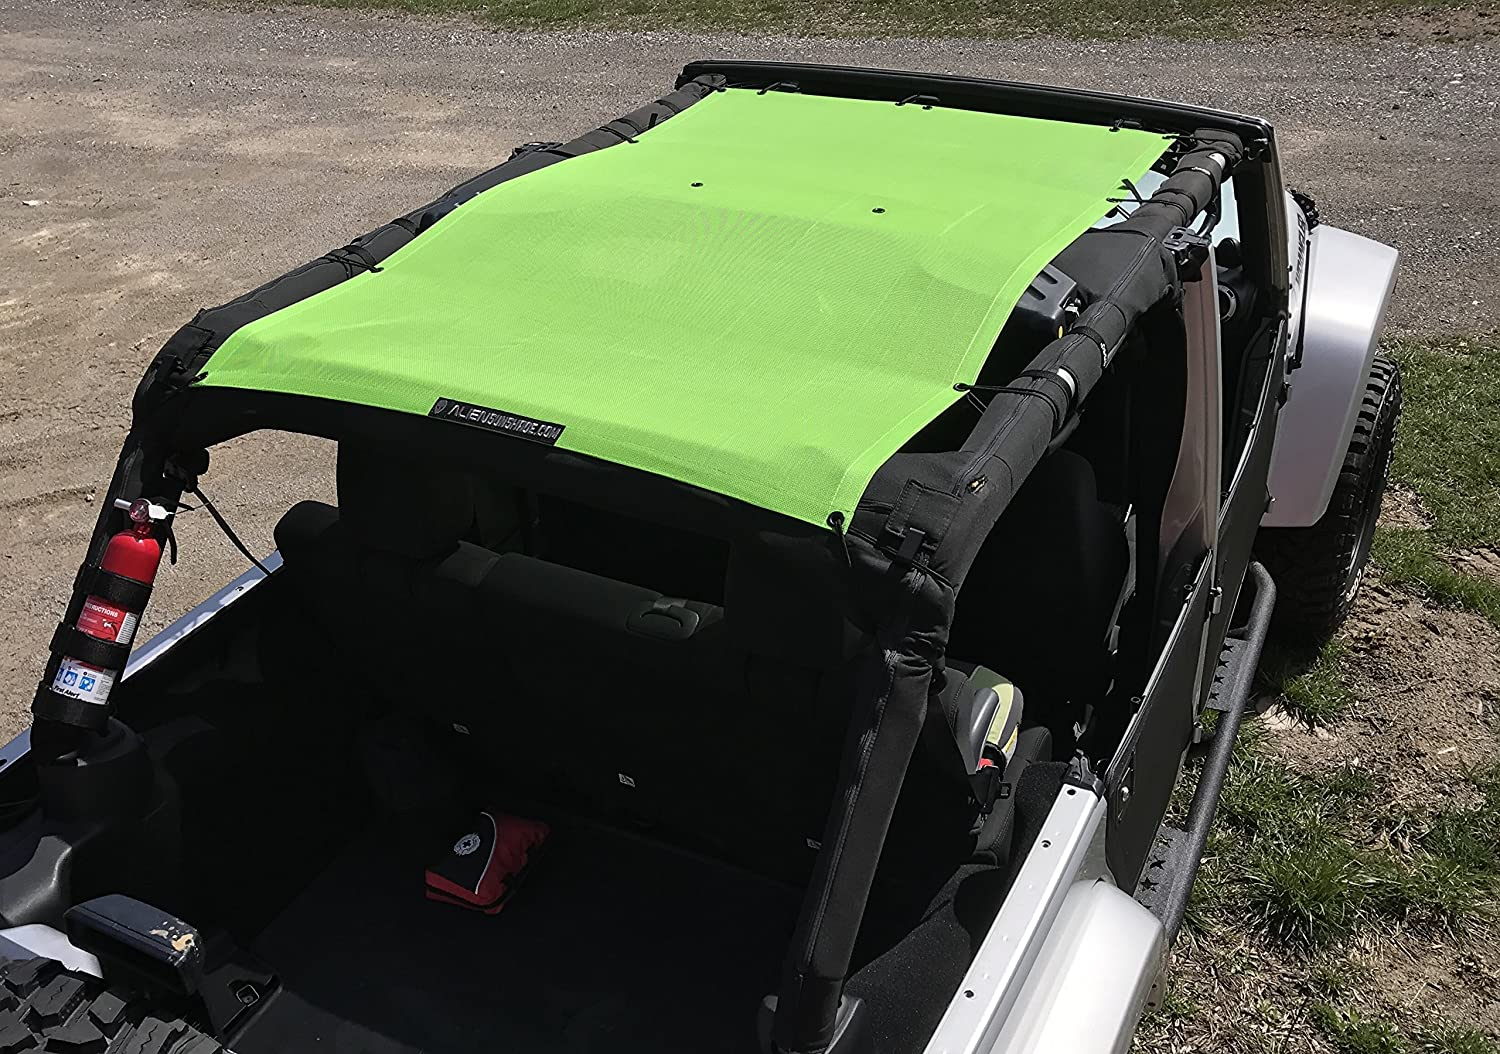 White 2007-2017 ALIEN SUNSHADE Jeep Wrangler Mesh Shade Top Cover with 10 Year Warranty Provides UV Protection for Your 4-Door JKU